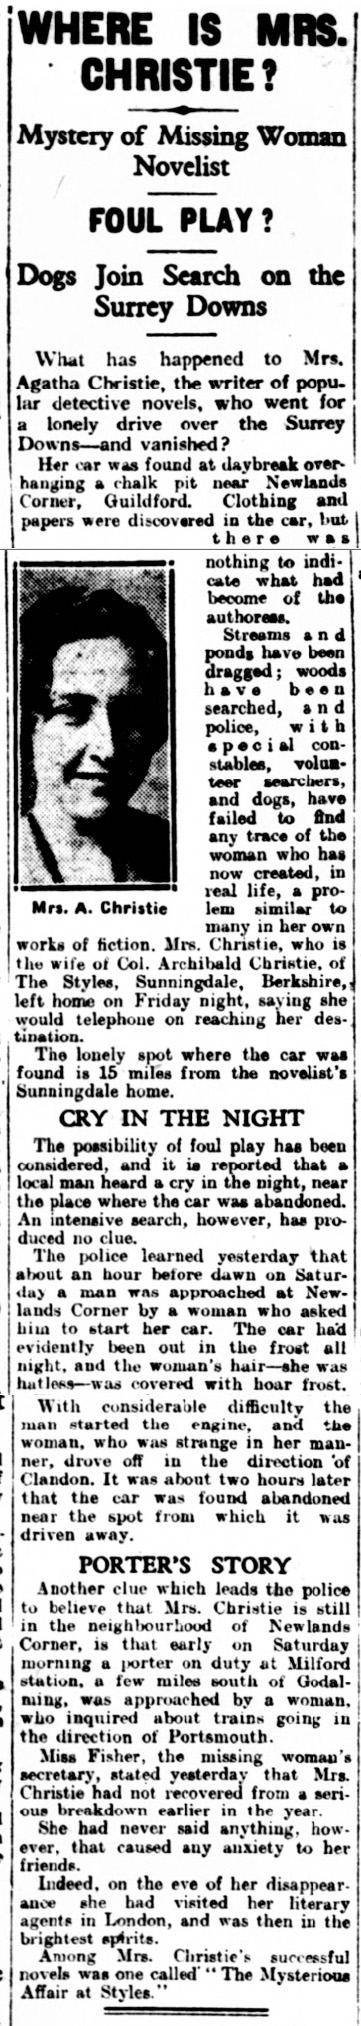 historical newspaper report on the Strange Disappearance of Agatha Christie